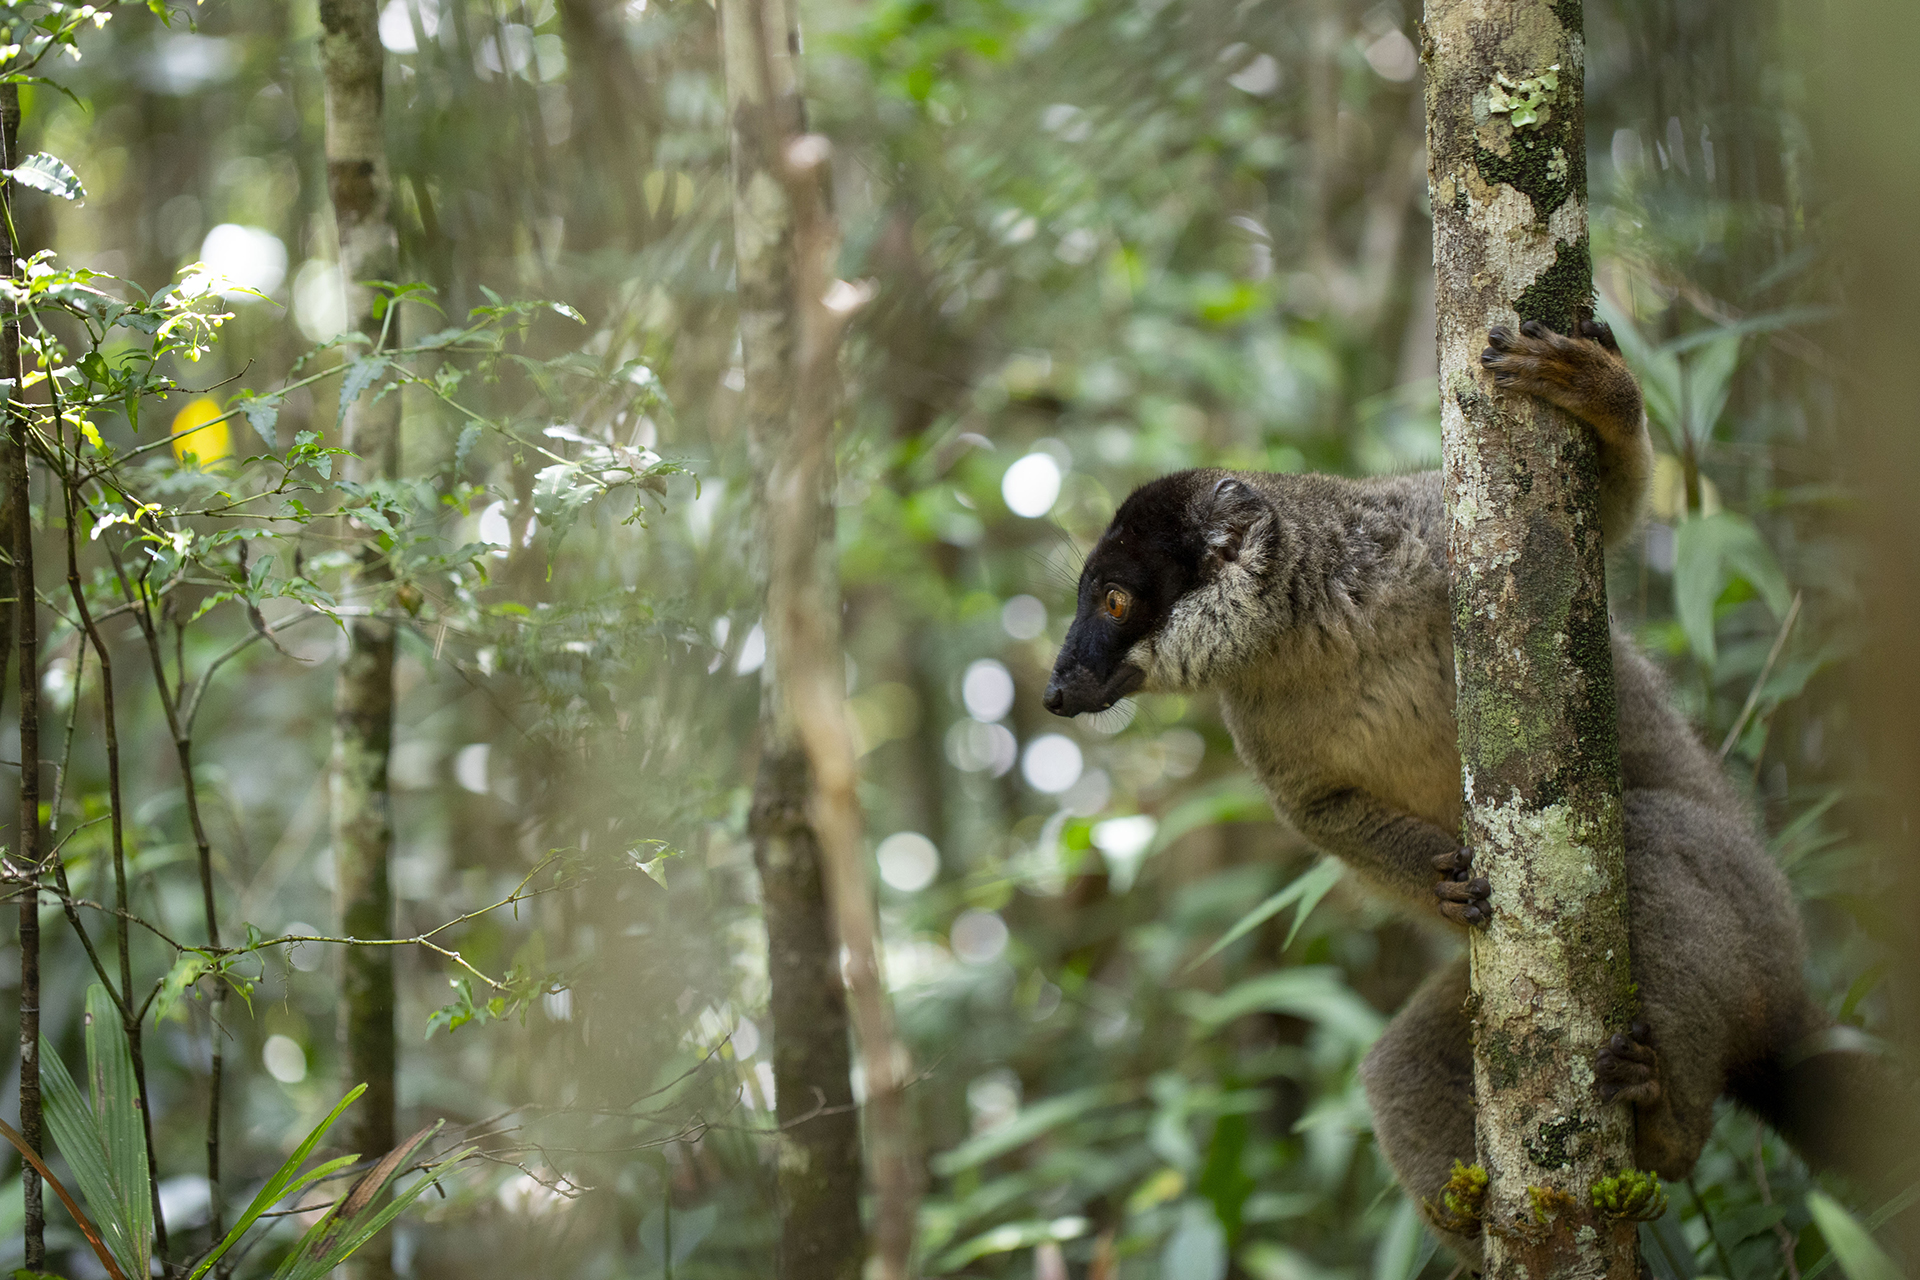 <p>As beloved species like lemurs are threatened by forest loss, we need technology to better measure biodiversity. Photo by Andry Rasamuel/WRI Africa.</p>